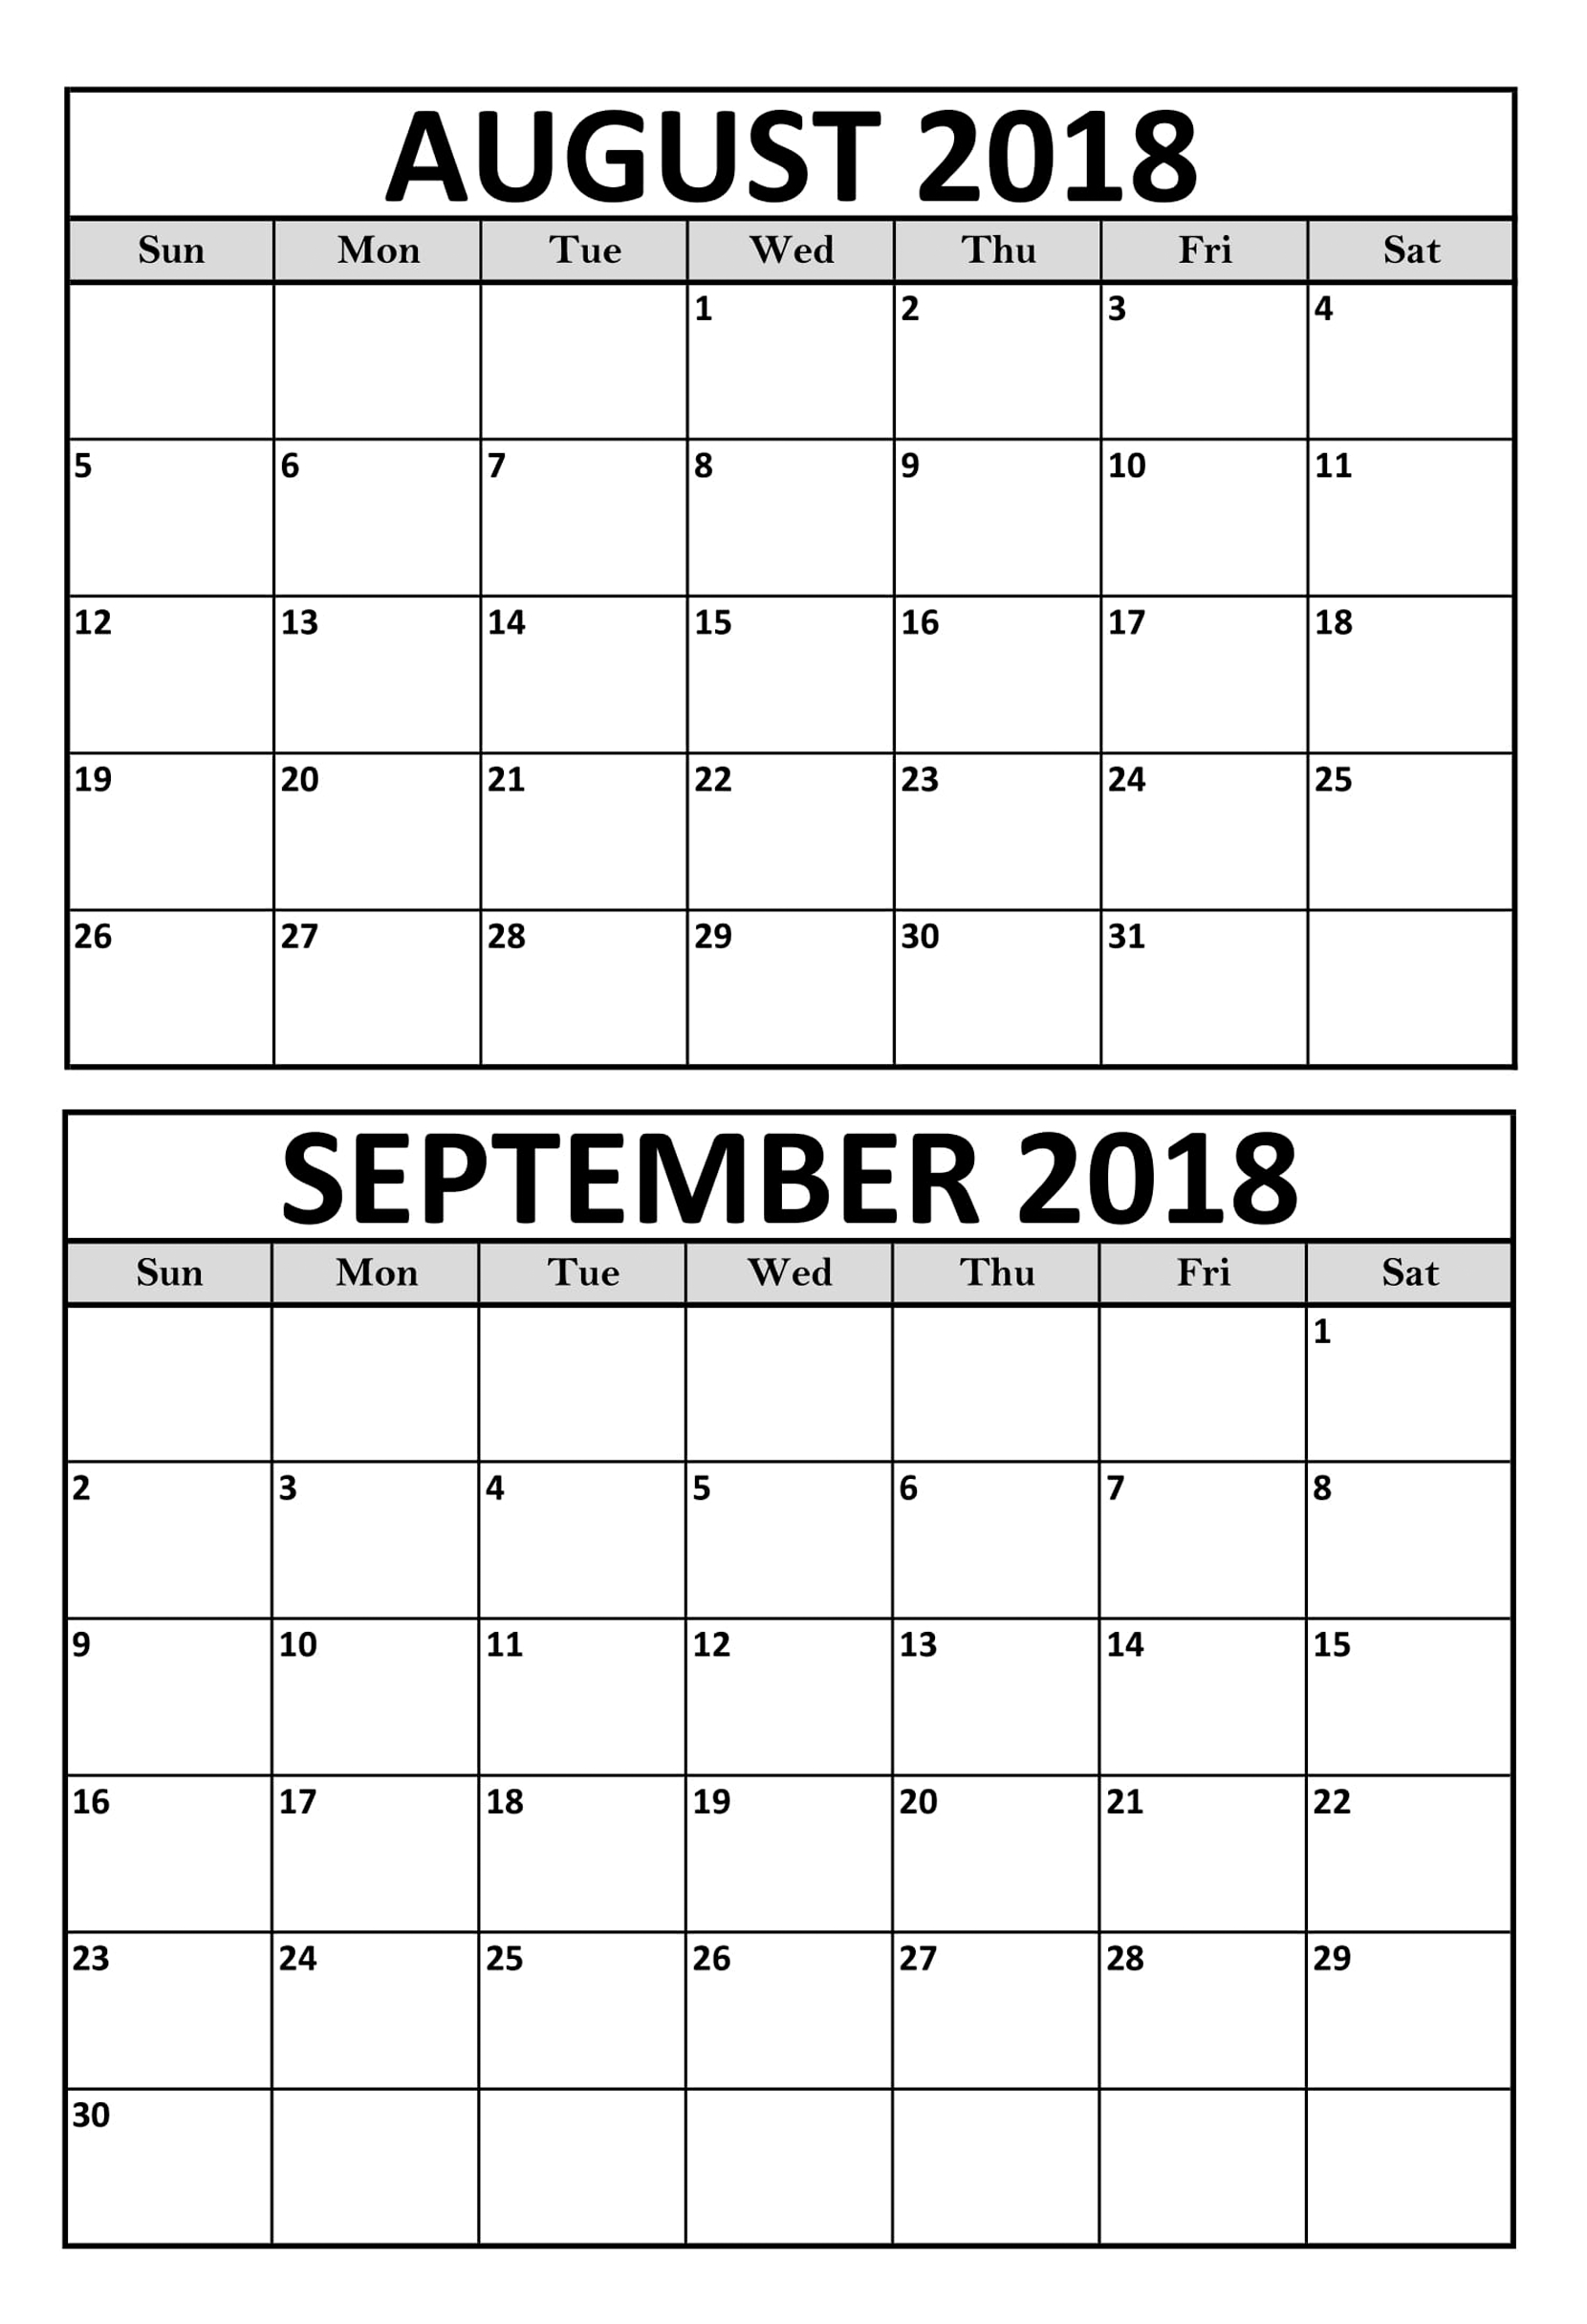 August September 2018 Calendar Printable Template | August 2018 pertaining to Blank August And September Calendar